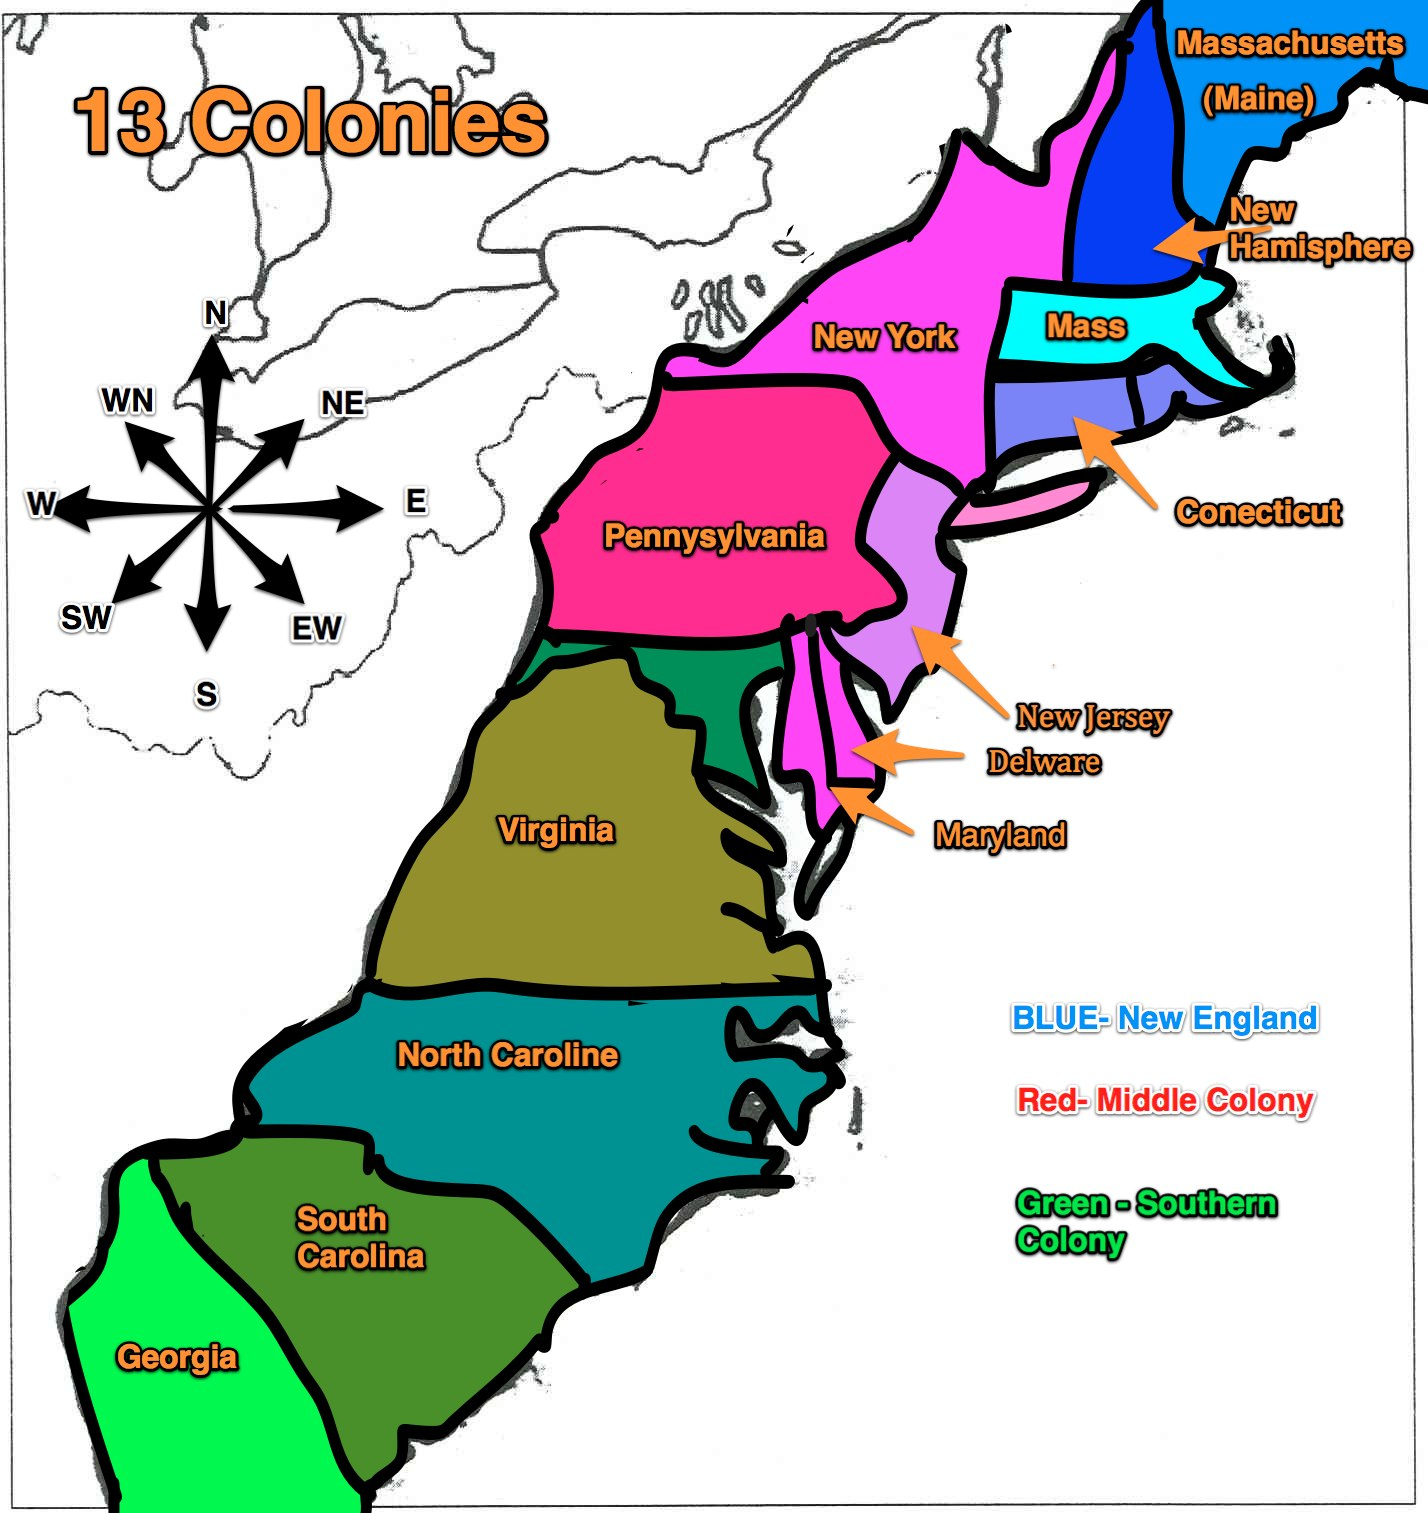 states abbreviations game with 7c 7cwebpages Shepherd Edu 7cibeich01 7ctau5921 on List Of All 50 States Joc together with United States Map With Capitals And State Names also State Abbreviations Crossword further 7C 7Cwebpages shepherd edu 7CIBEICH01 7CTAU5921 moreover 4003.